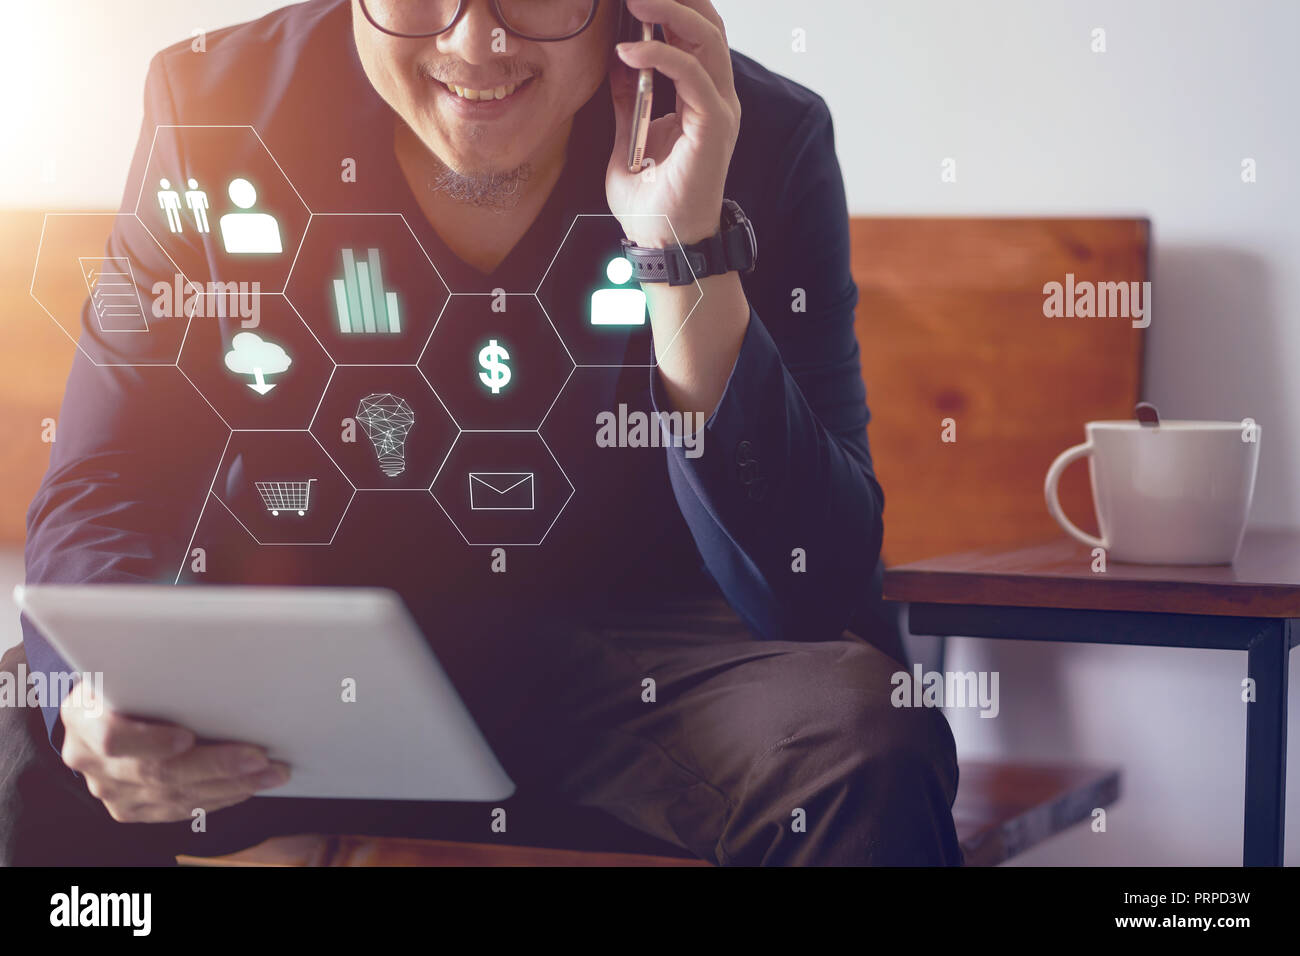 Man holding digital tablet making online shopping and banking payment. Blurred background . - Stock Image